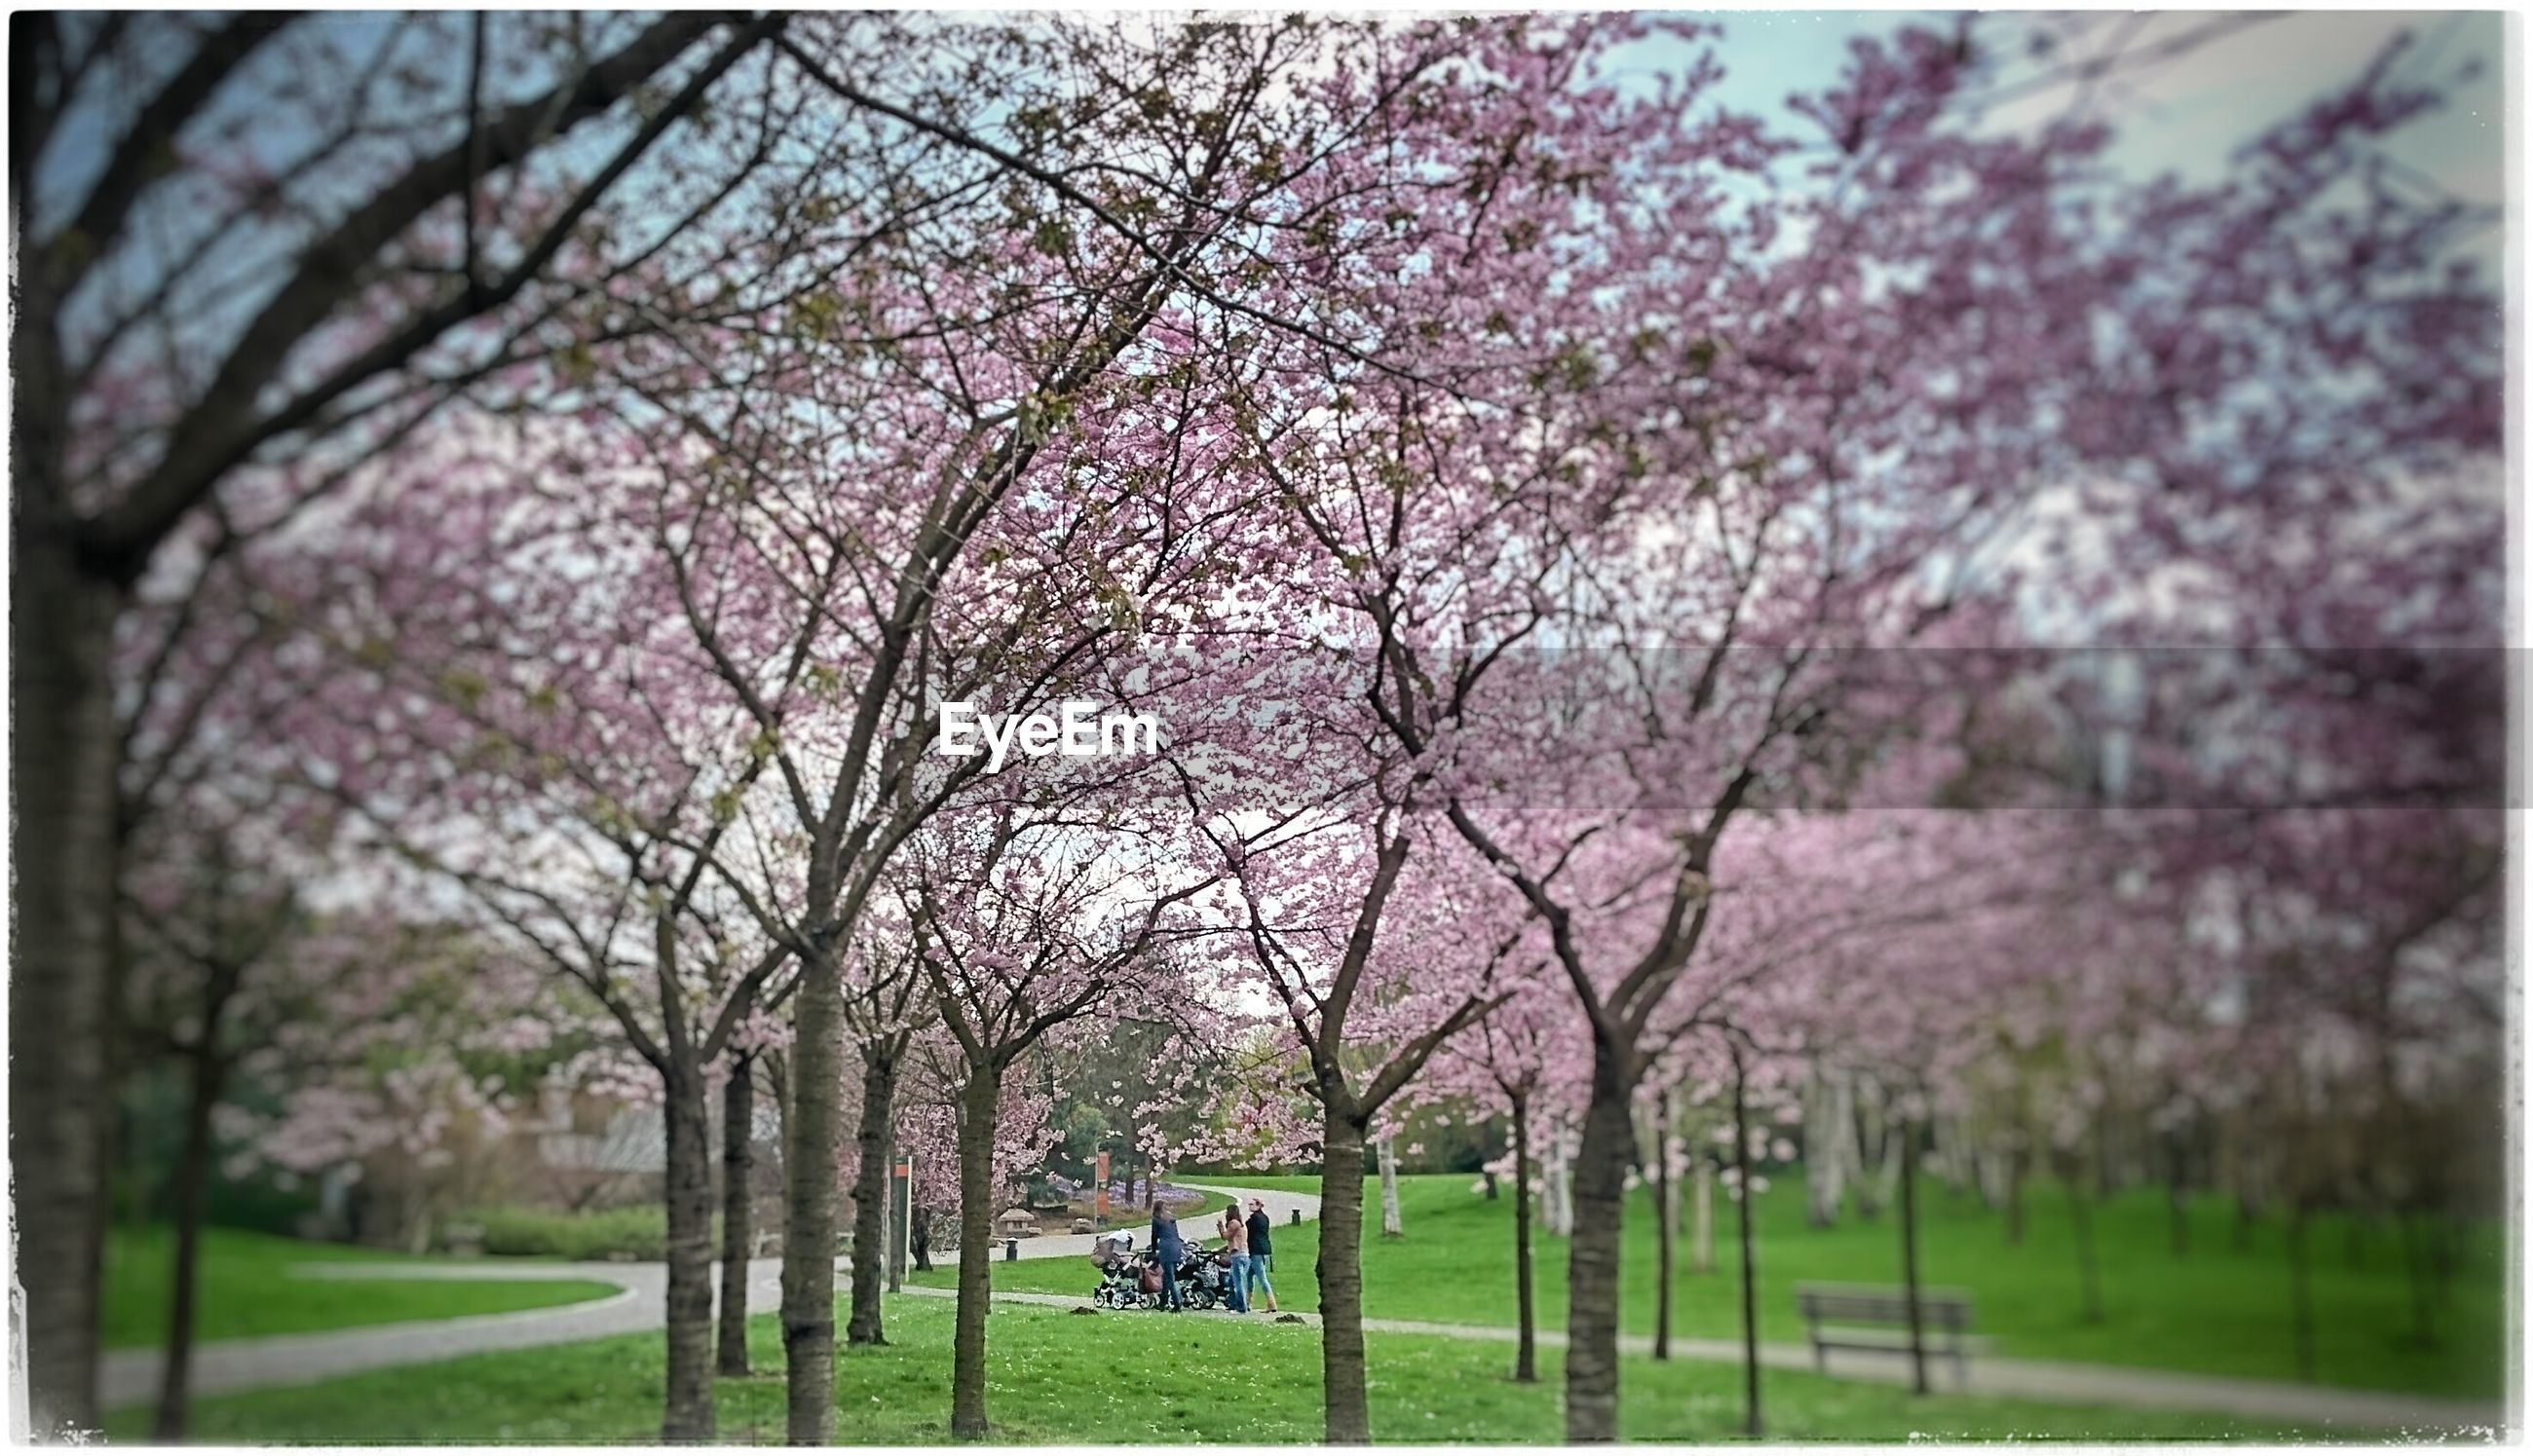 tree, grass, park - man made space, leisure activity, transfer print, lifestyles, auto post production filter, branch, men, person, park, nature, flower, growth, day, field, bicycle, outdoors, beauty in nature